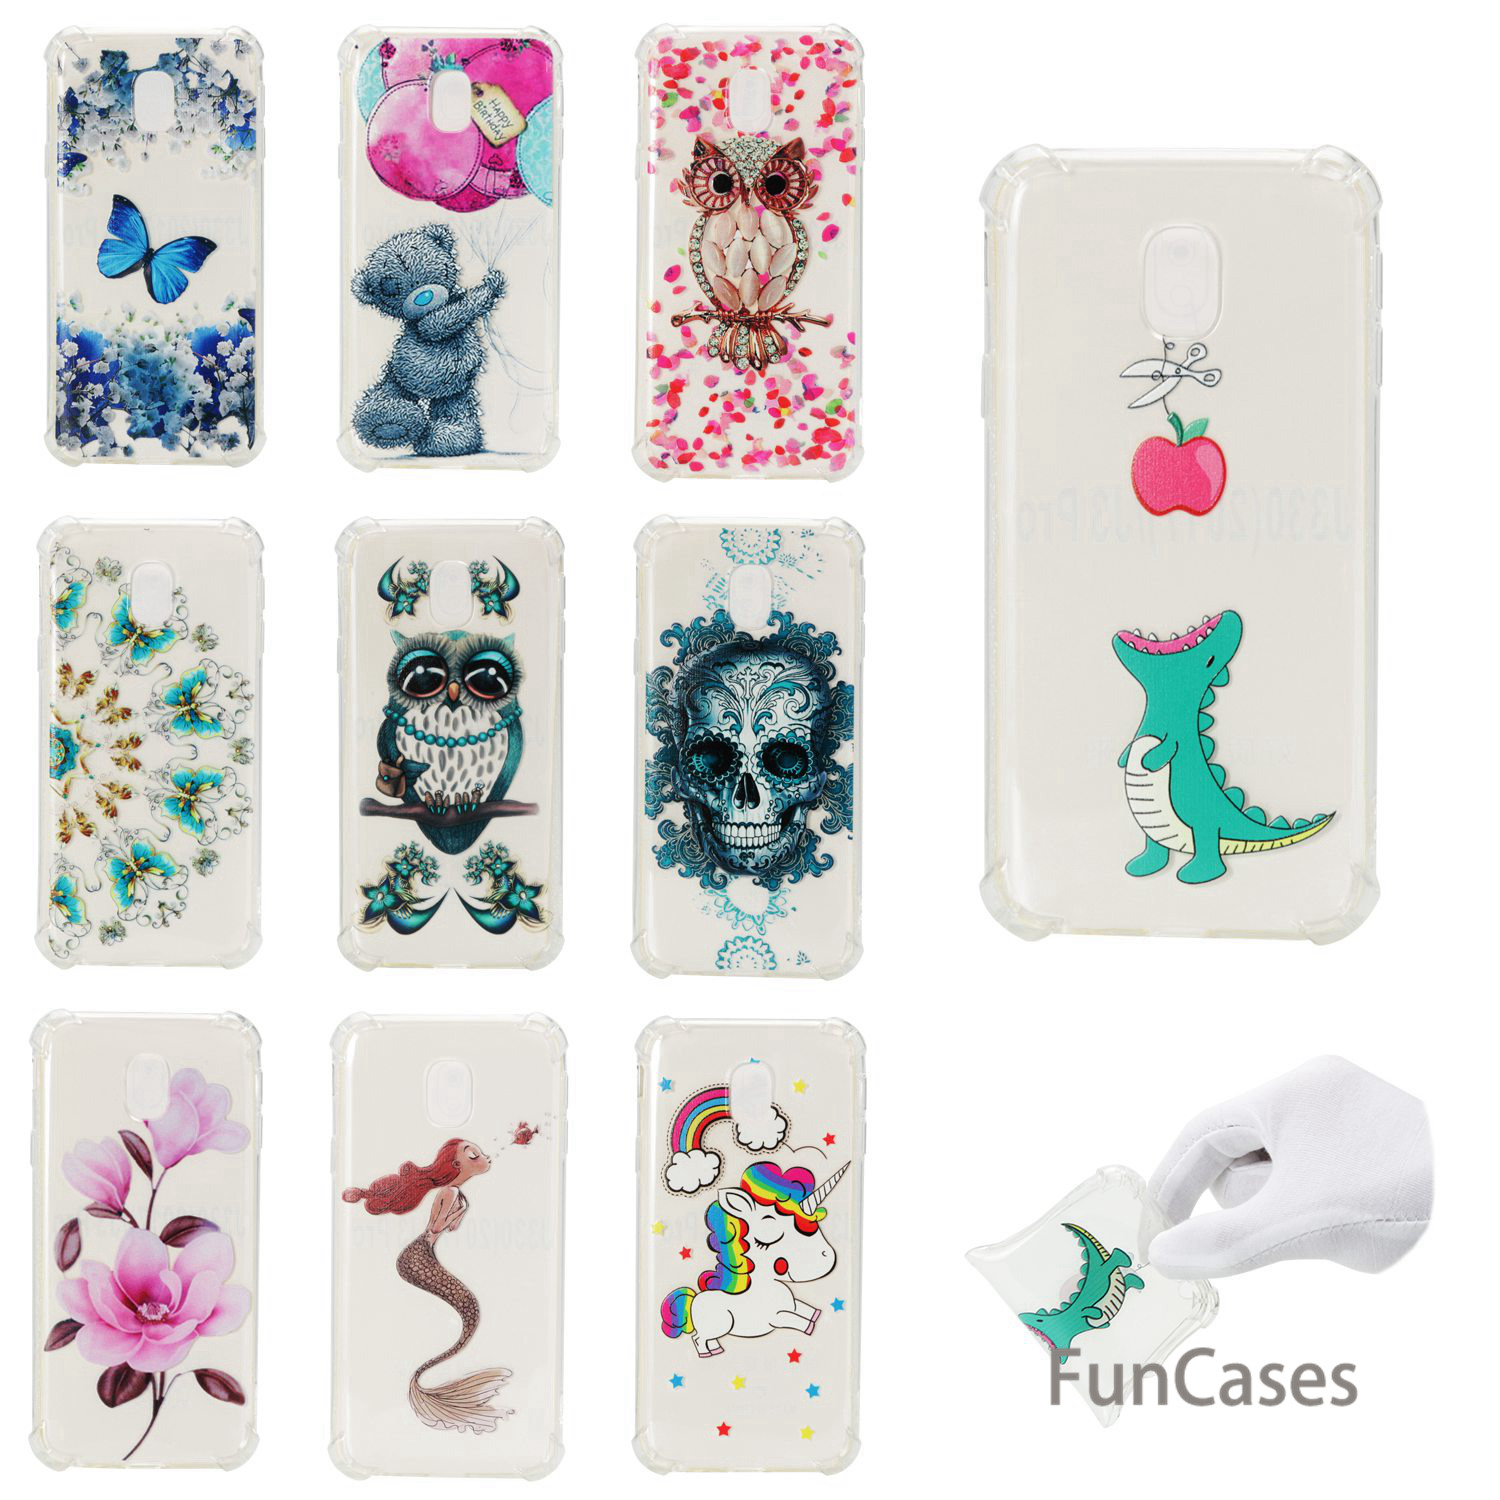 Fruit Phone Case sFor Funda Samsung J730 European Version Soft Silicone Aksesuar Phone Case Samsung Galaxy J7 2017 EU Version